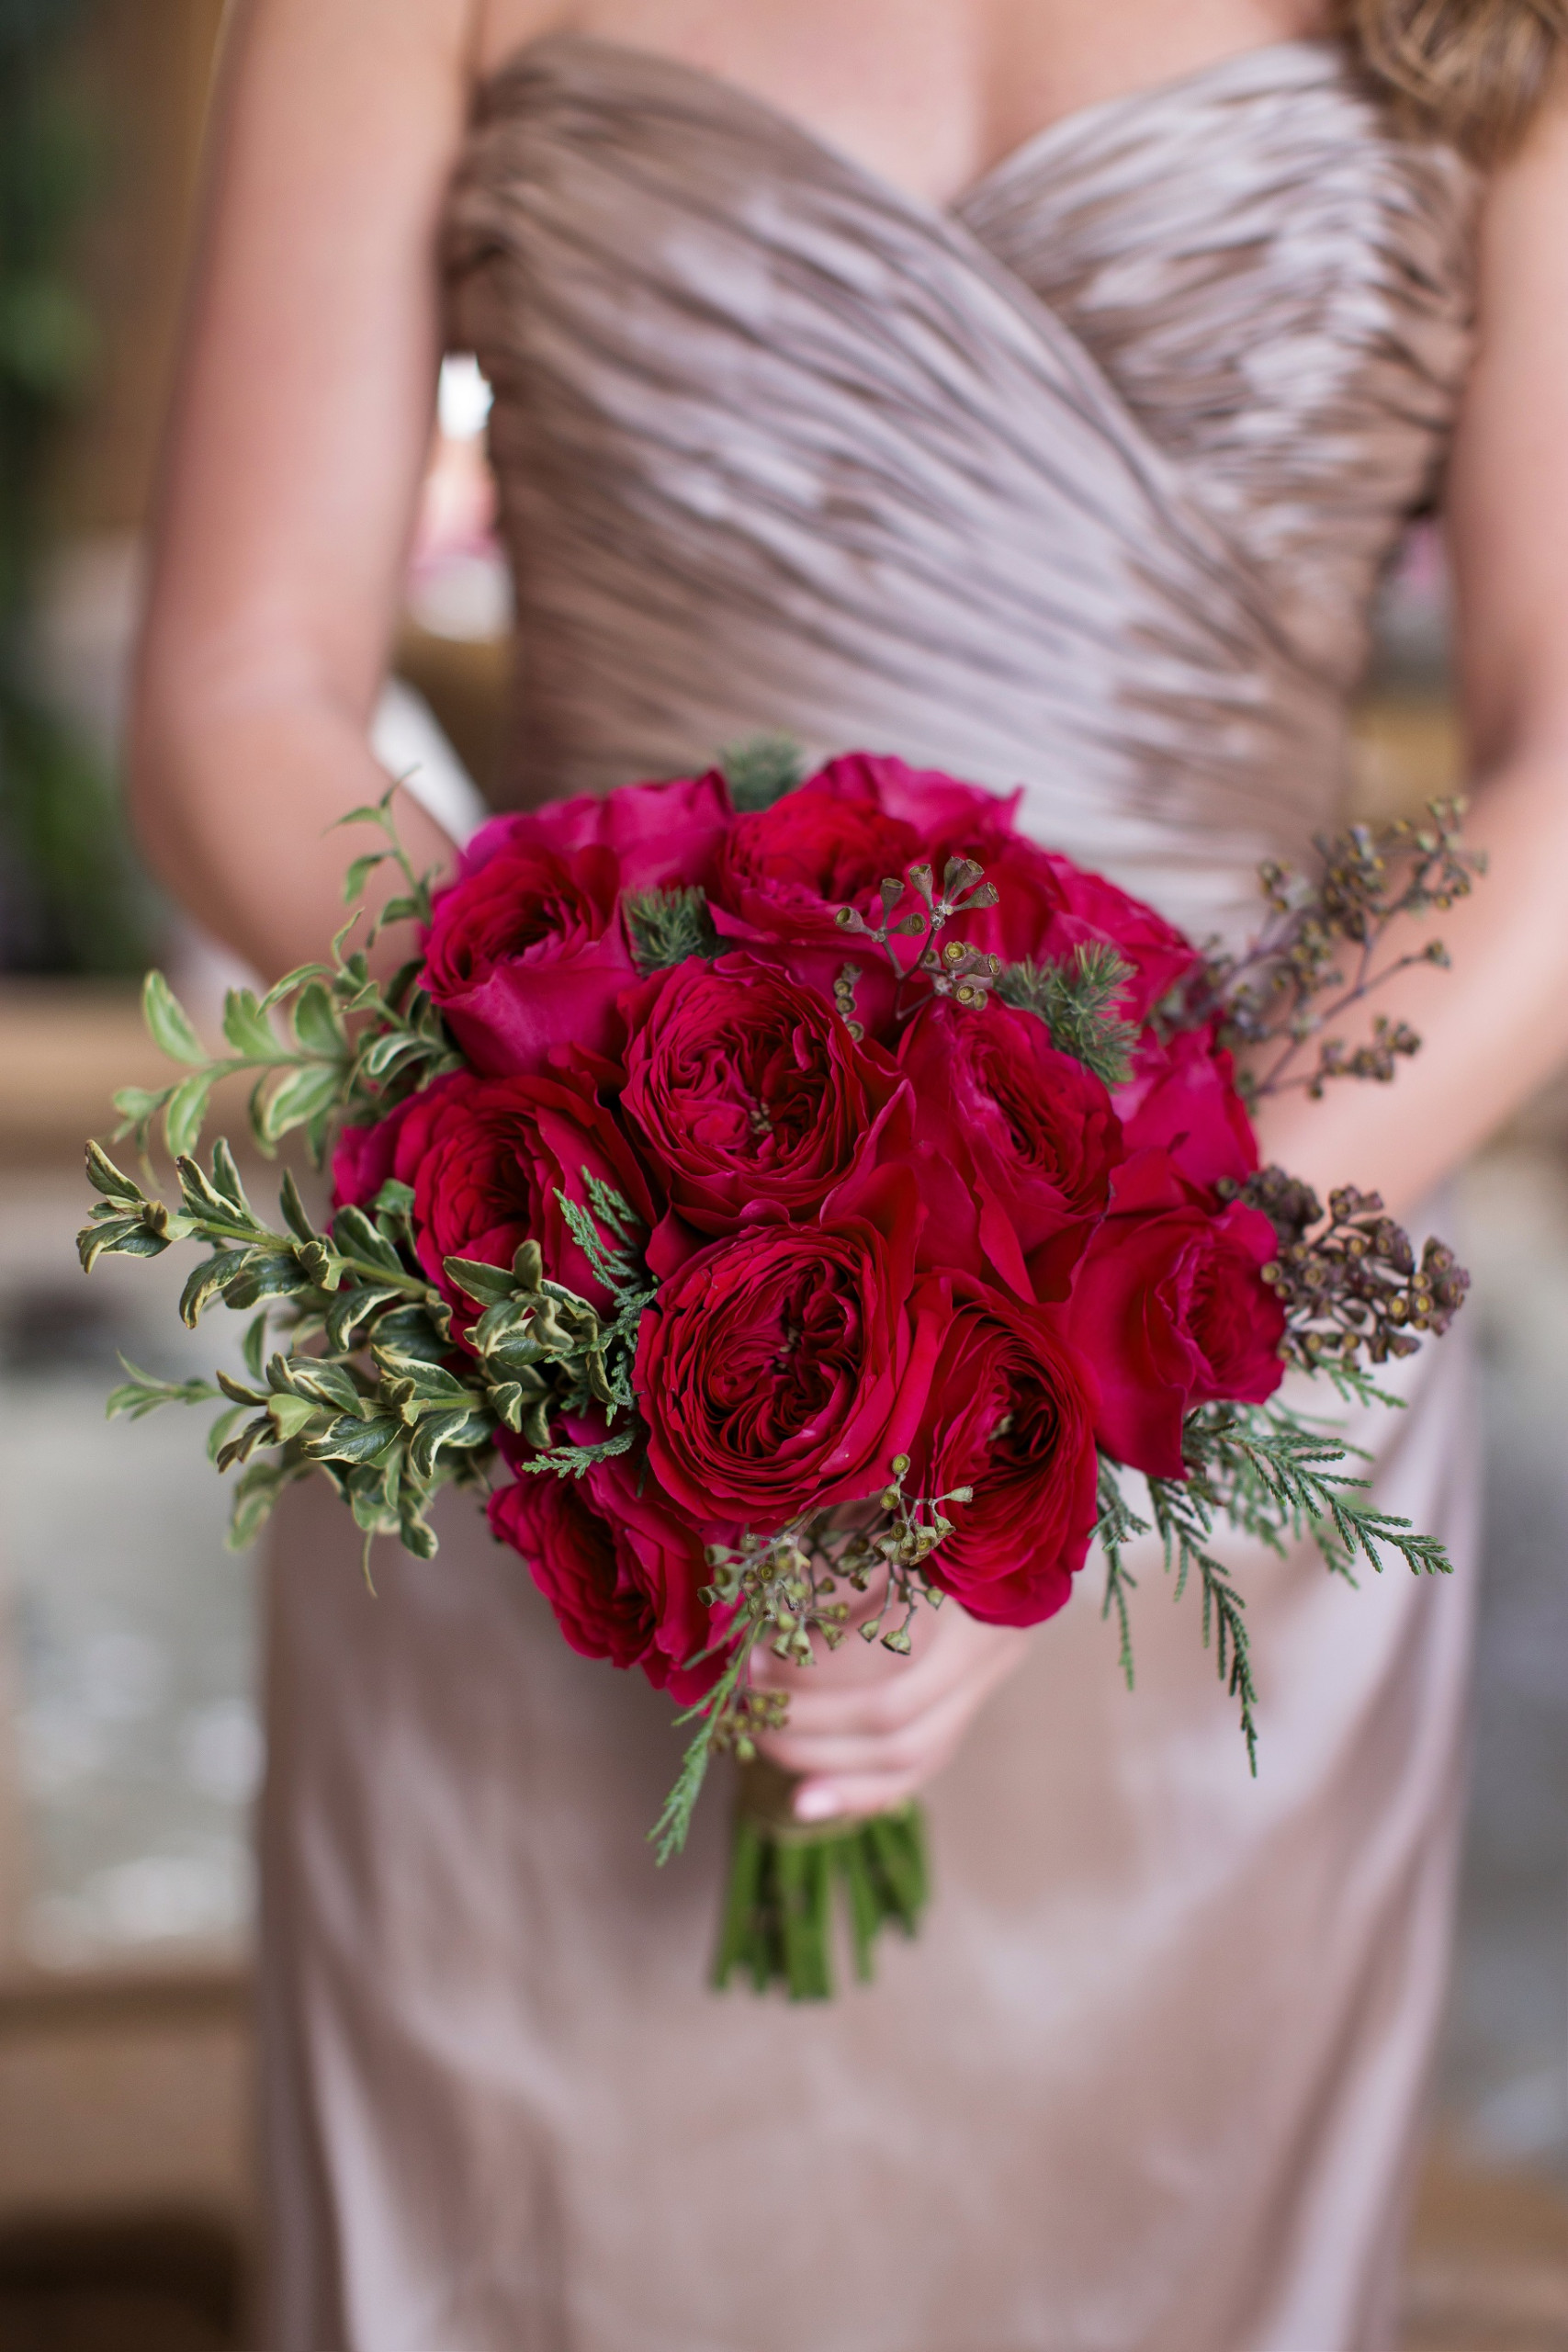 beautiful bouquet for this fall with garden rose tess from the david austin collection - Red Garden Rose Bouquet